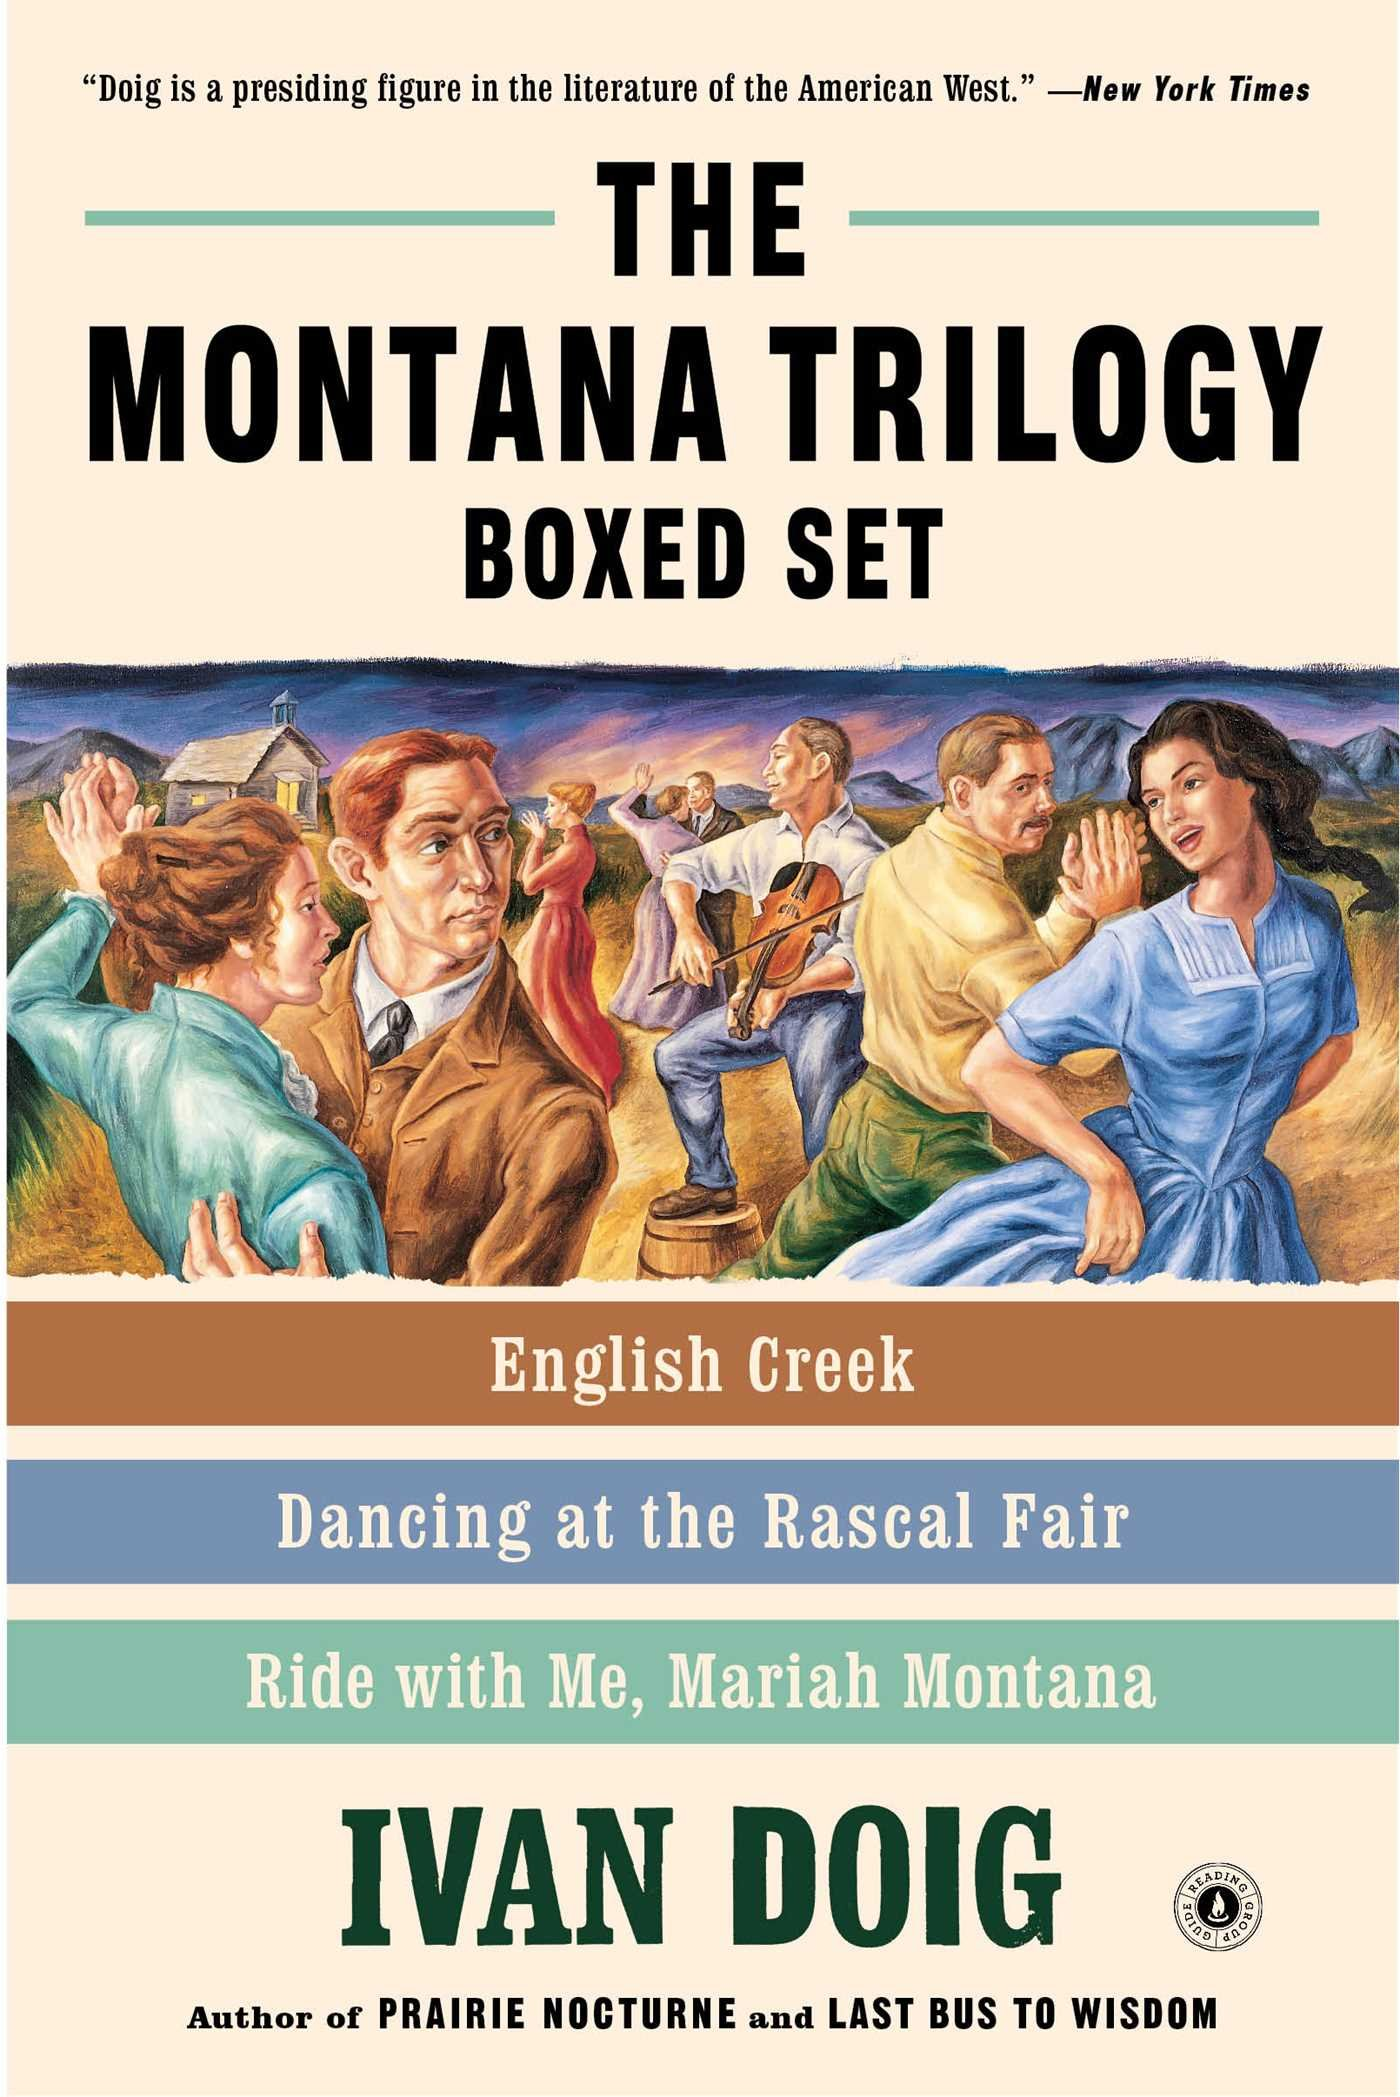 The Montana Trilogy Boxed Set: English Creek, Dancing at the Rascal Fair, and Ride With Me, Mariah Montana PDF